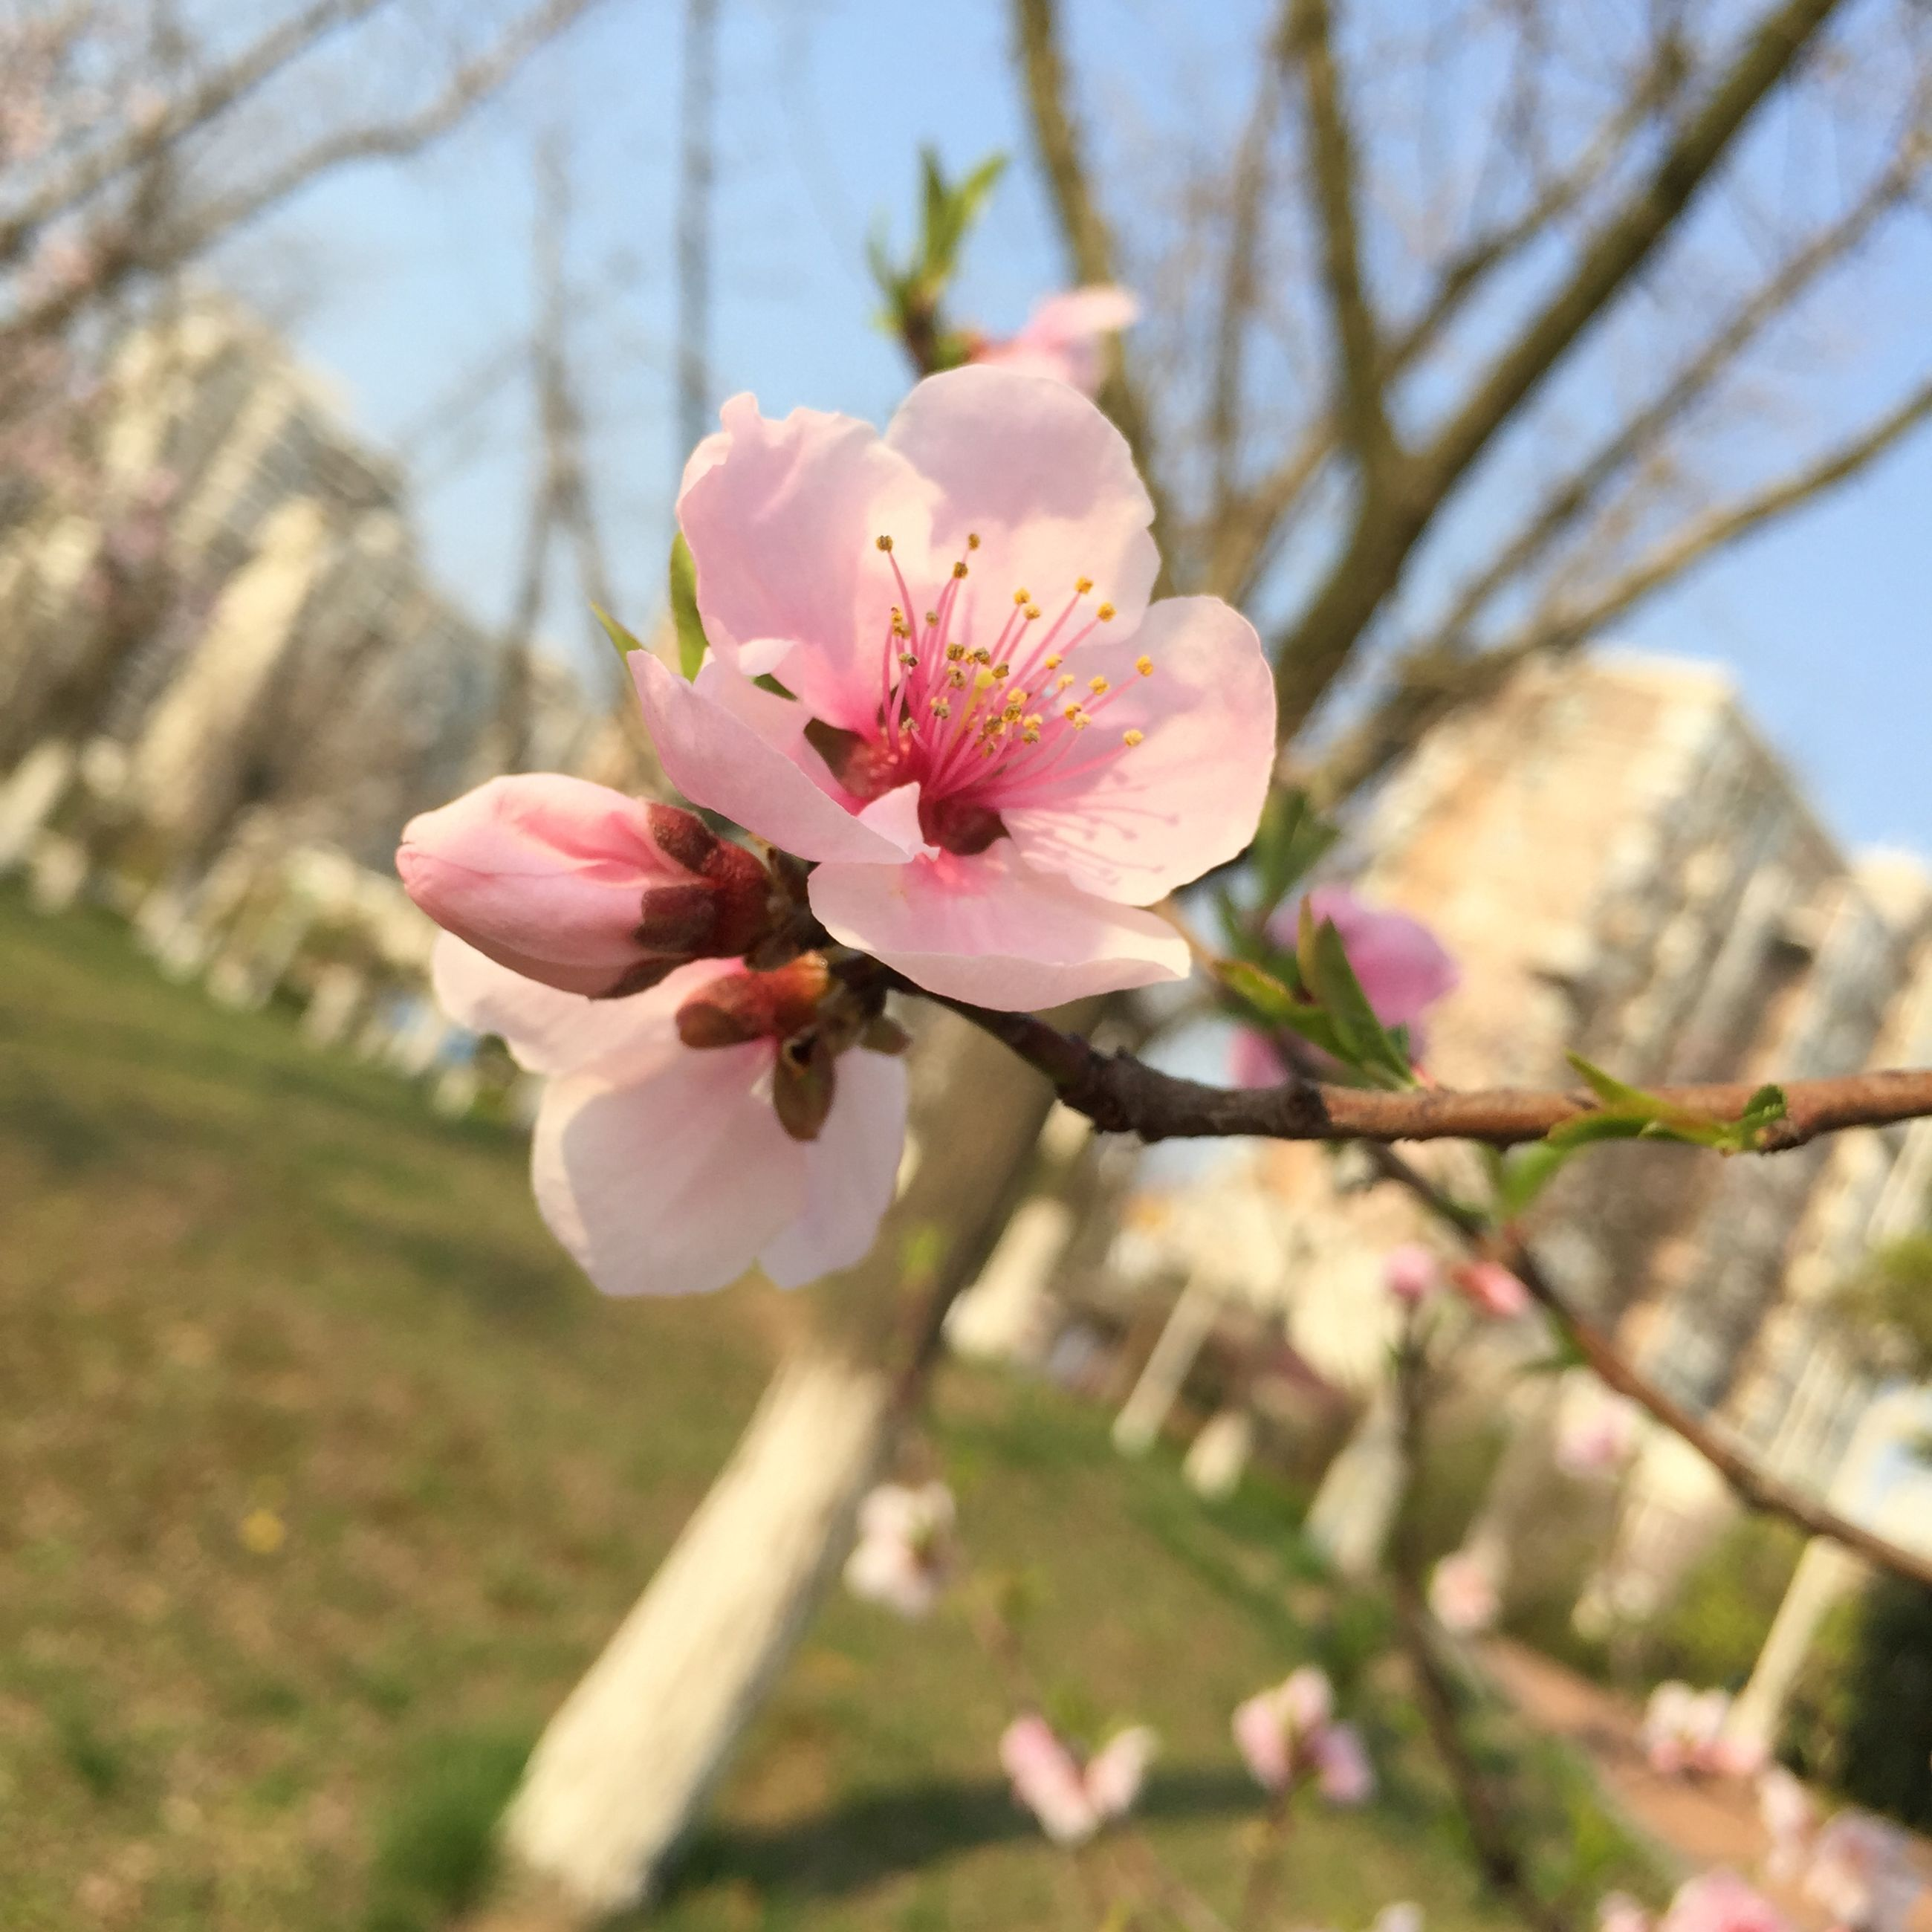 flower, freshness, fragility, petal, growth, pink color, focus on foreground, flower head, close-up, beauty in nature, branch, nature, blossom, blooming, in bloom, tree, springtime, stamen, day, botany